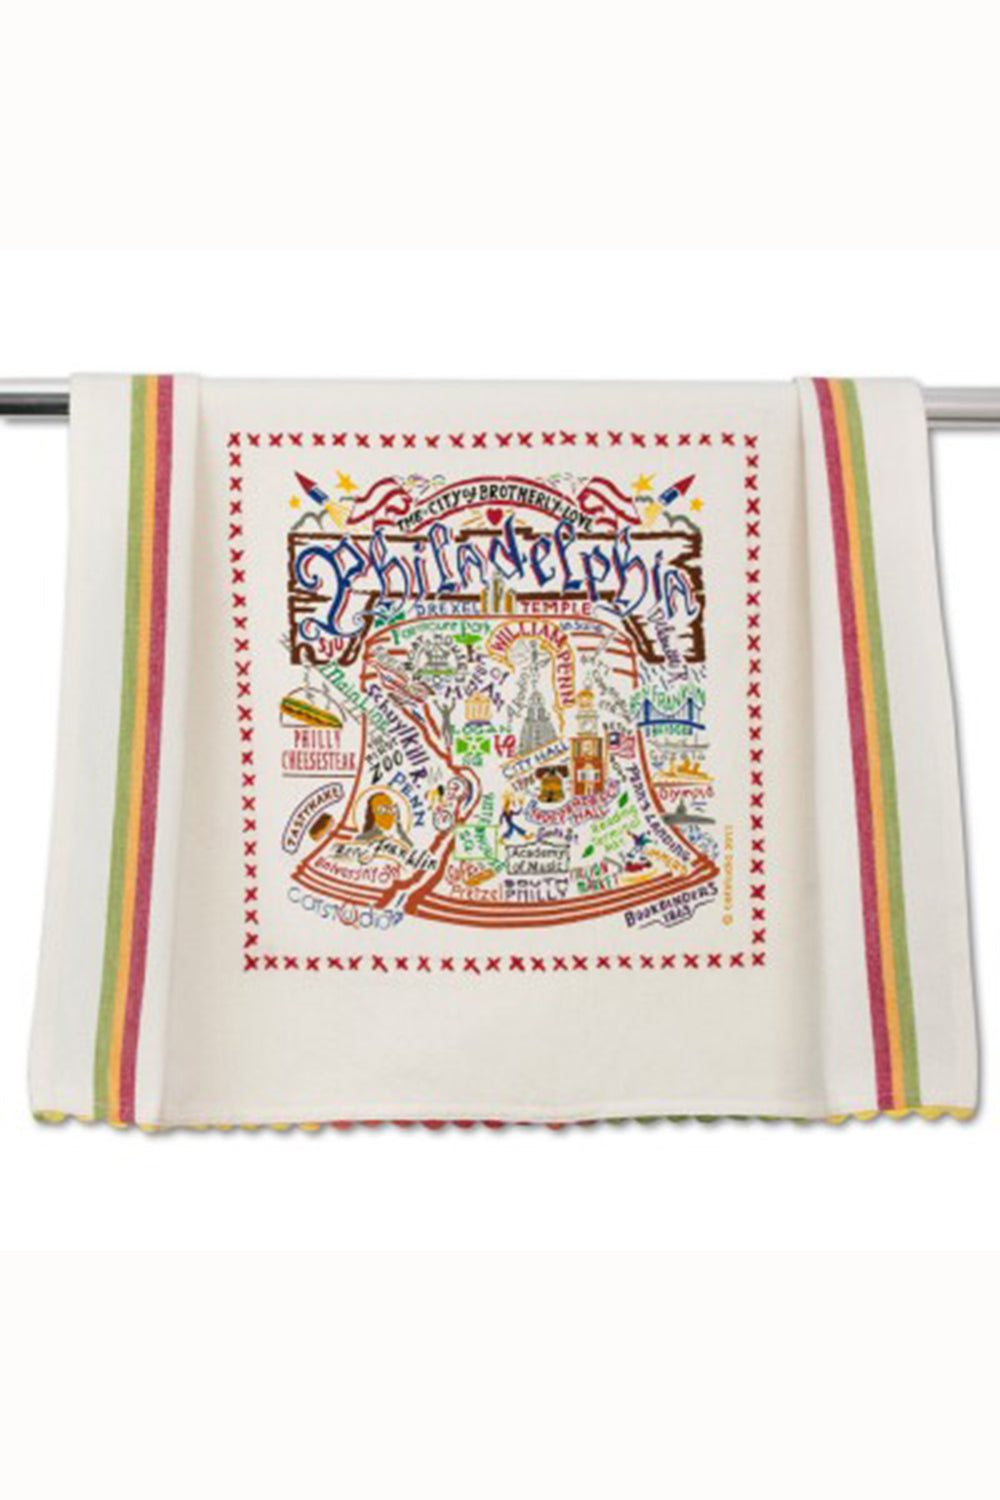 Embroidered Dish Towel  - Philadelphia